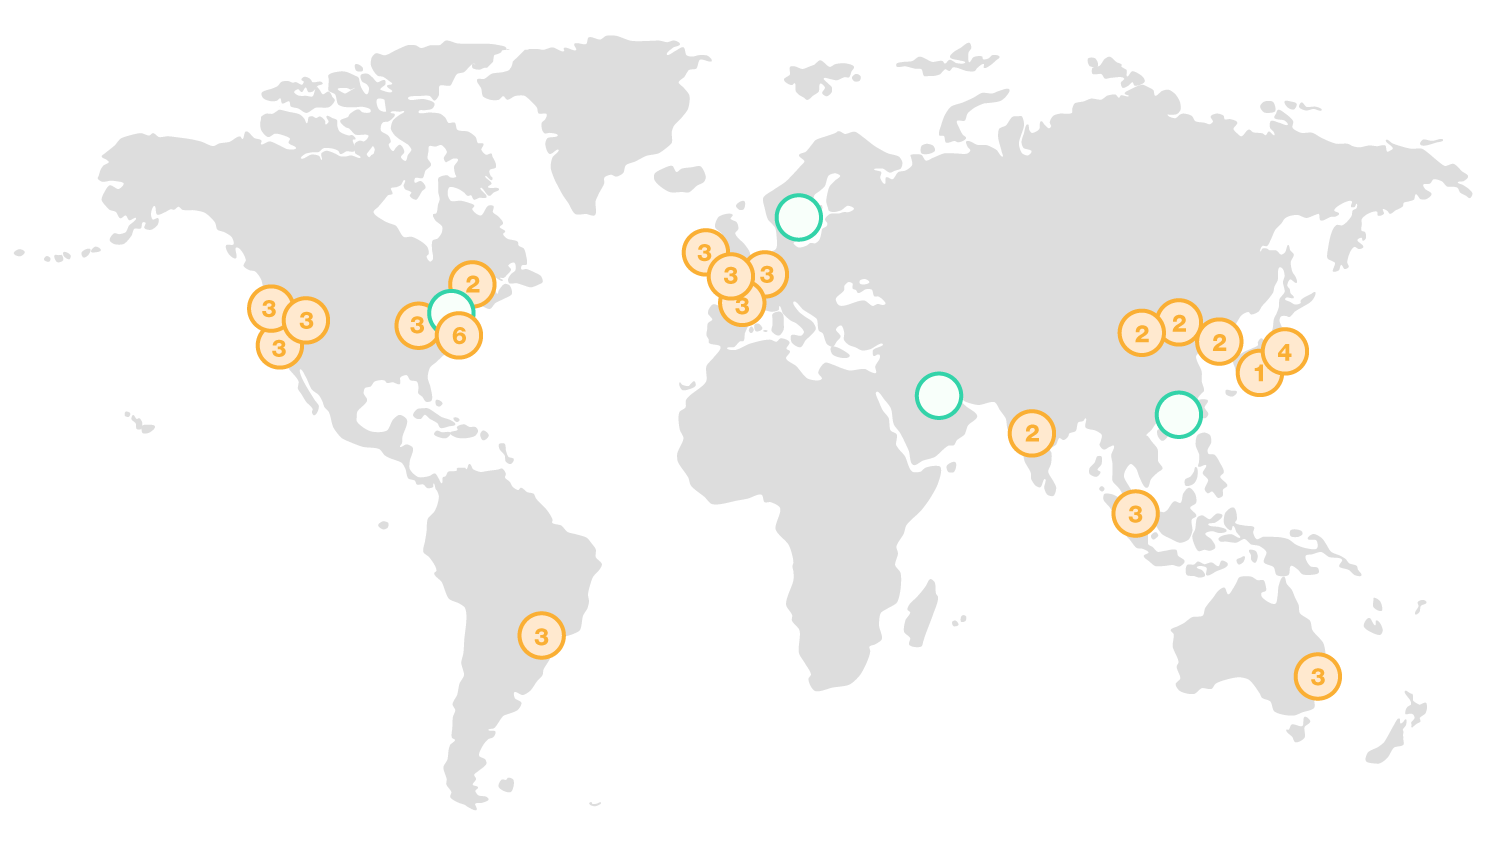 aws global infrastructure infrastructure region